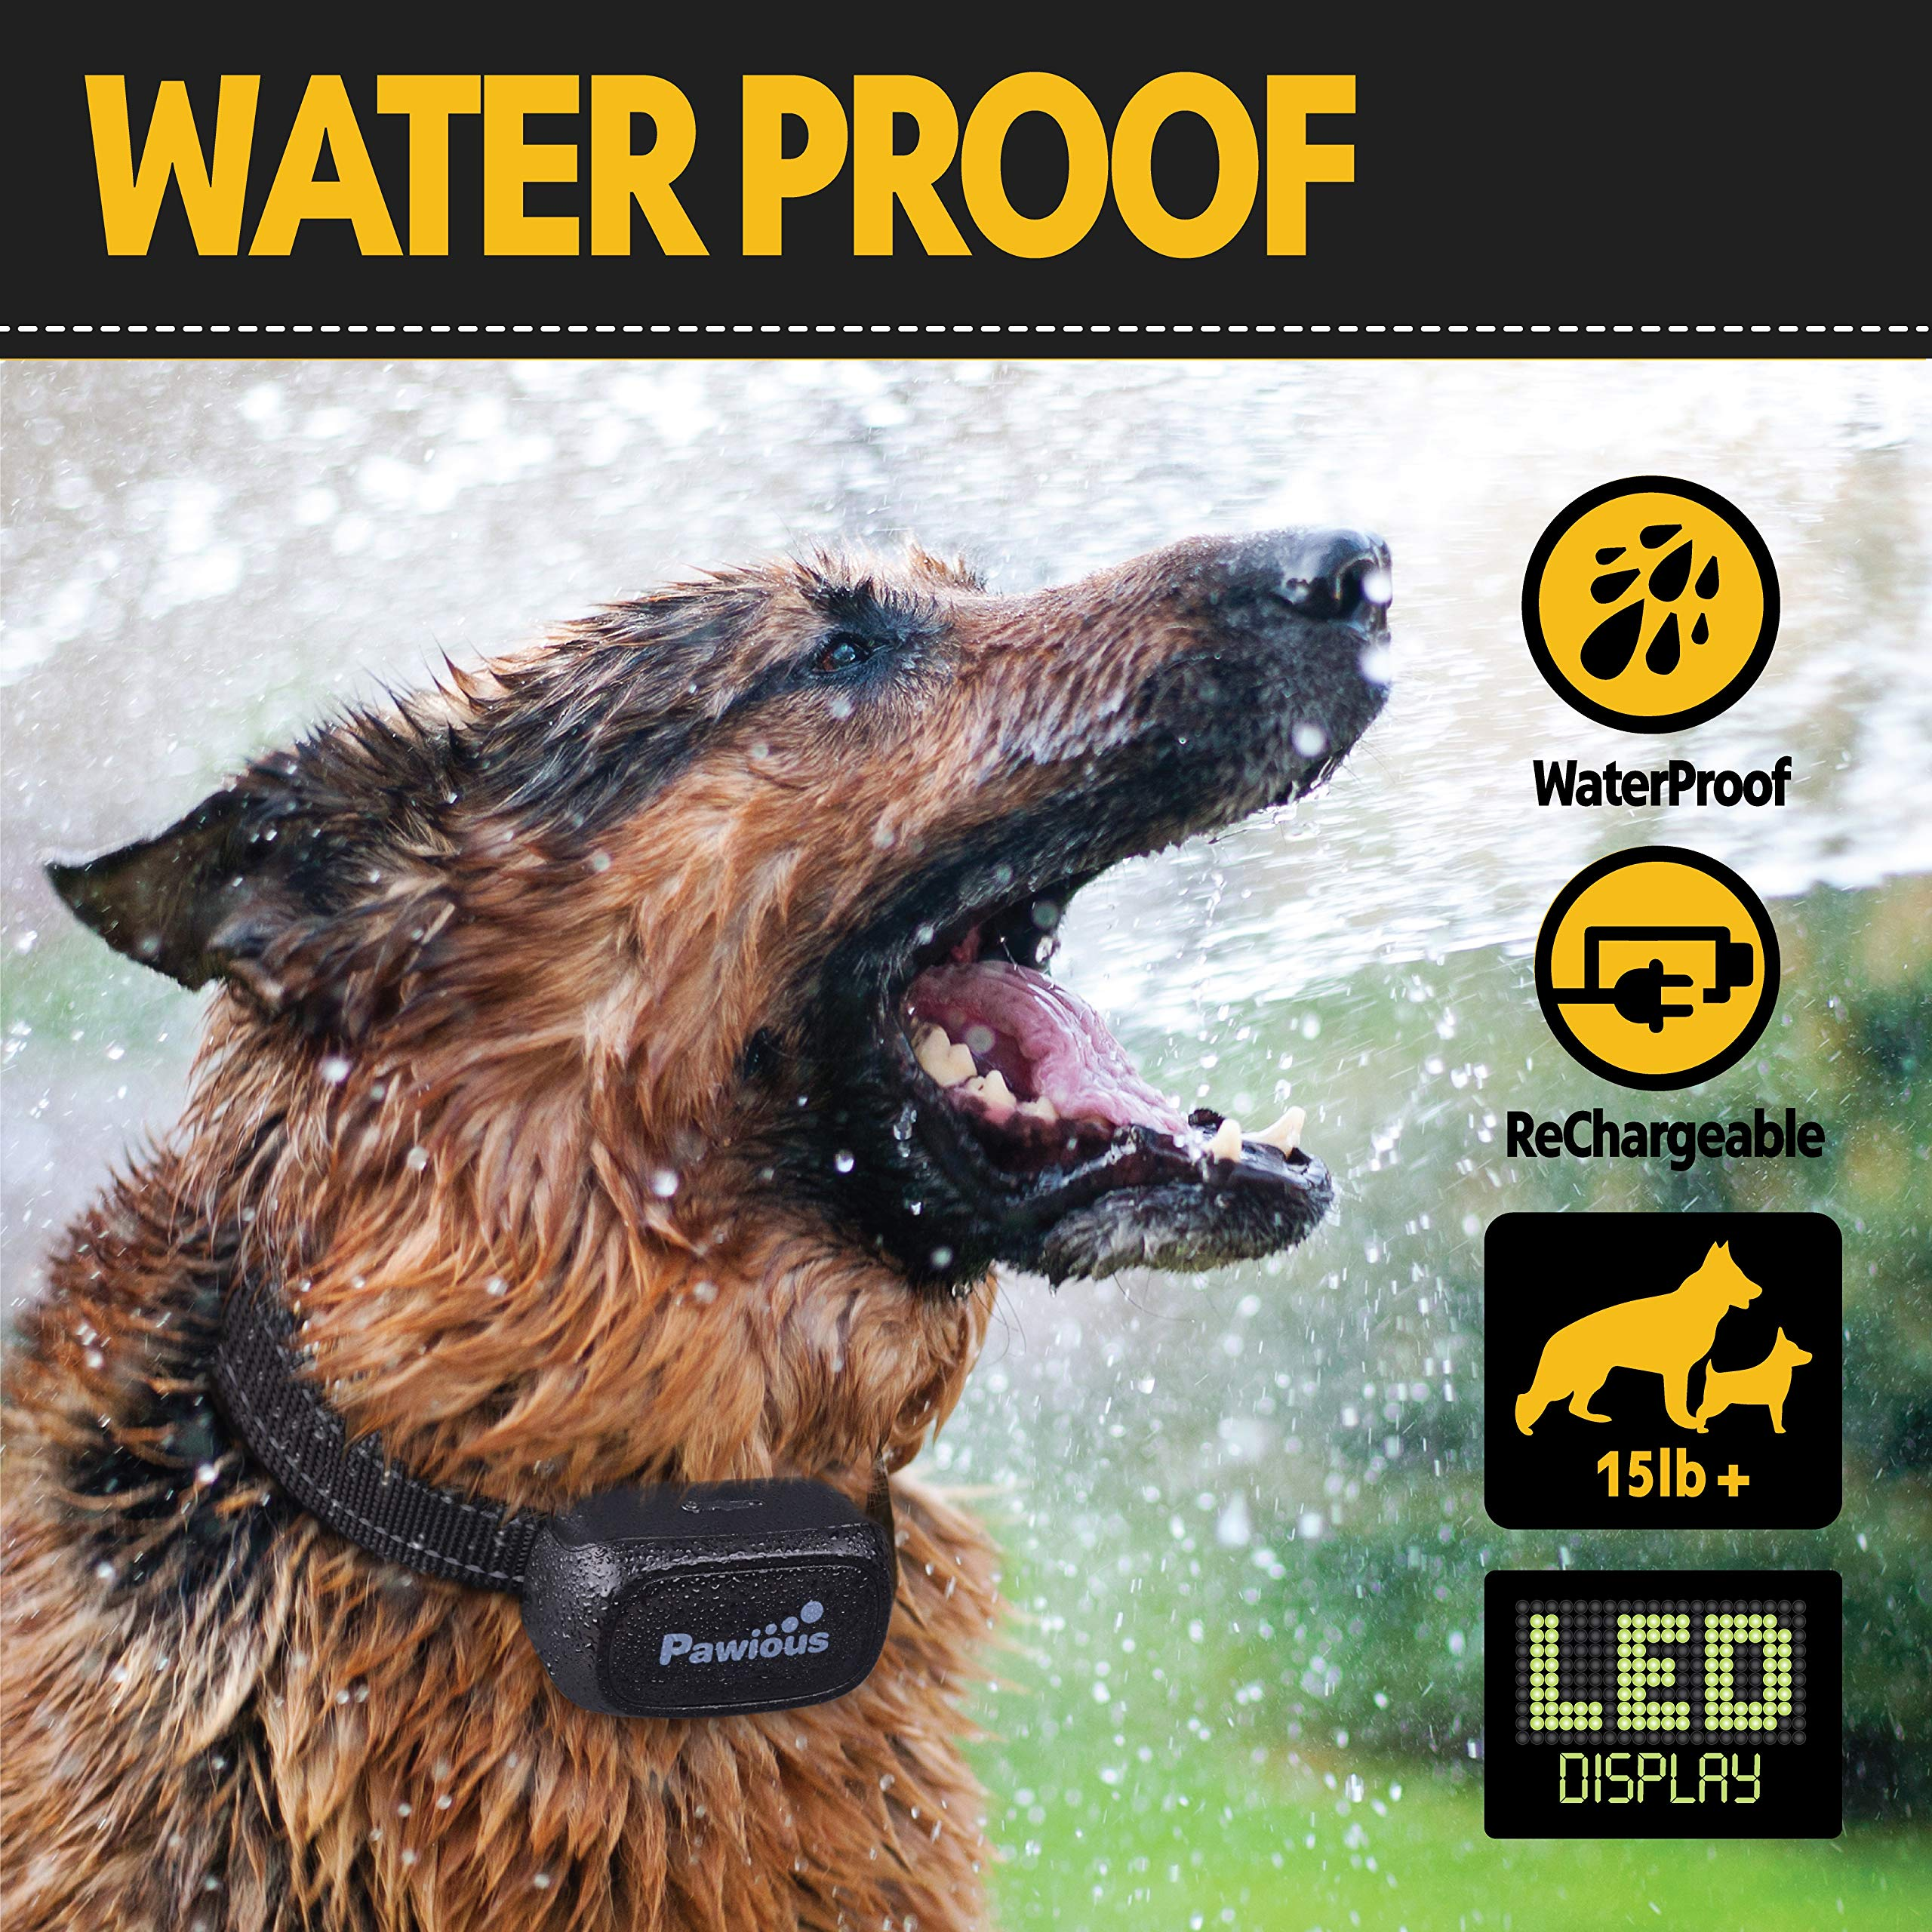 Pawious Dog Training Collar [Newest 2019] - Rechargeable Remote Dog Shock Collar Small Medium Large Dogs - Long Range, Waterproof, Large LED Screen, Beep, Vibration, Shock E-Collar by Pawious (Image #5)